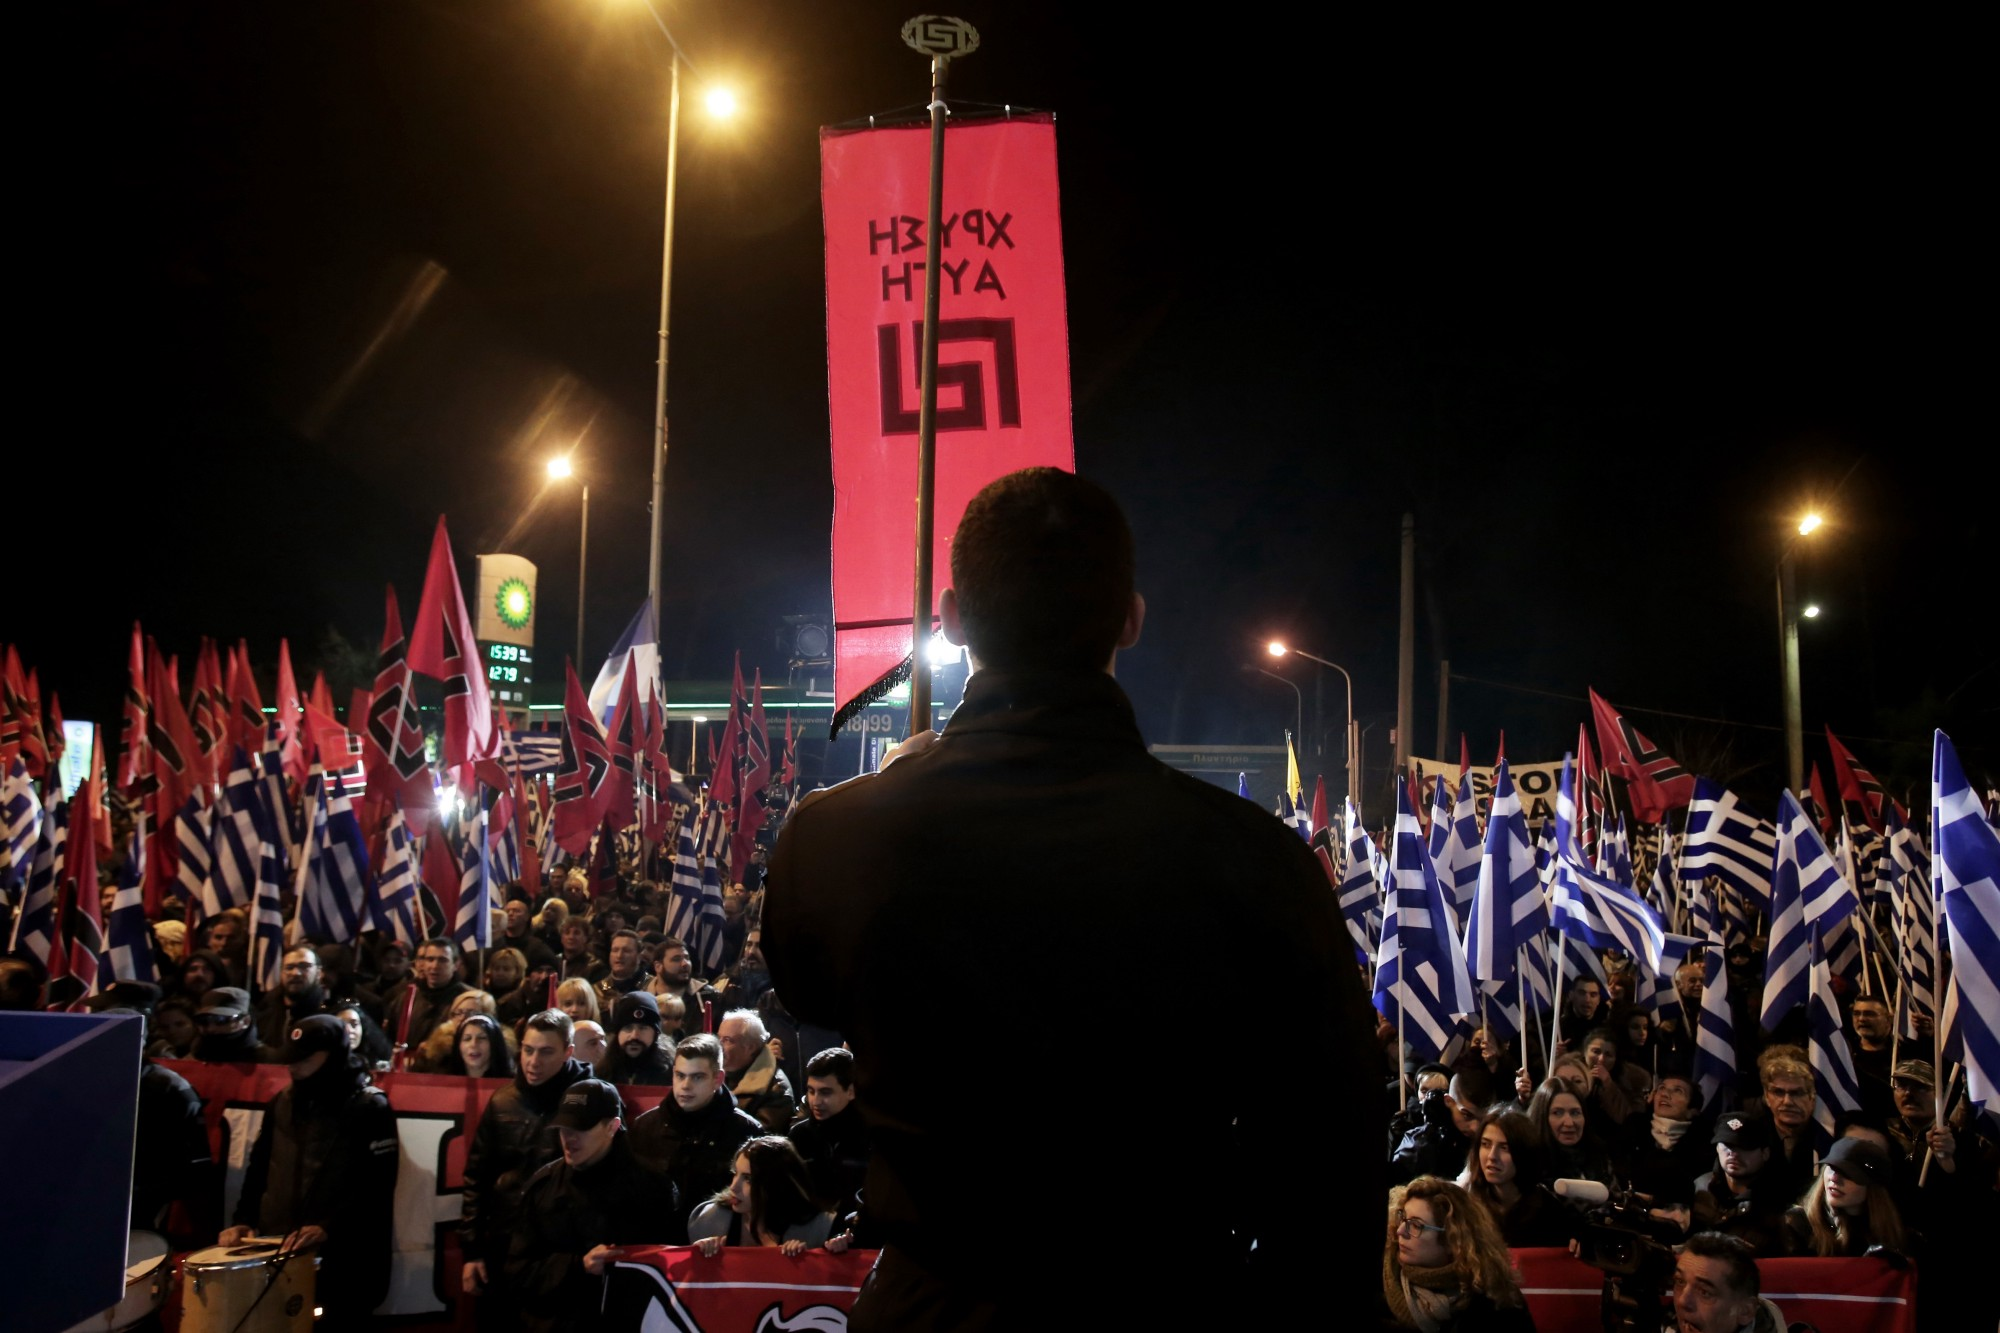 Censure motion for unparliamentary conduct against Golden Dawn head and 2 MPs